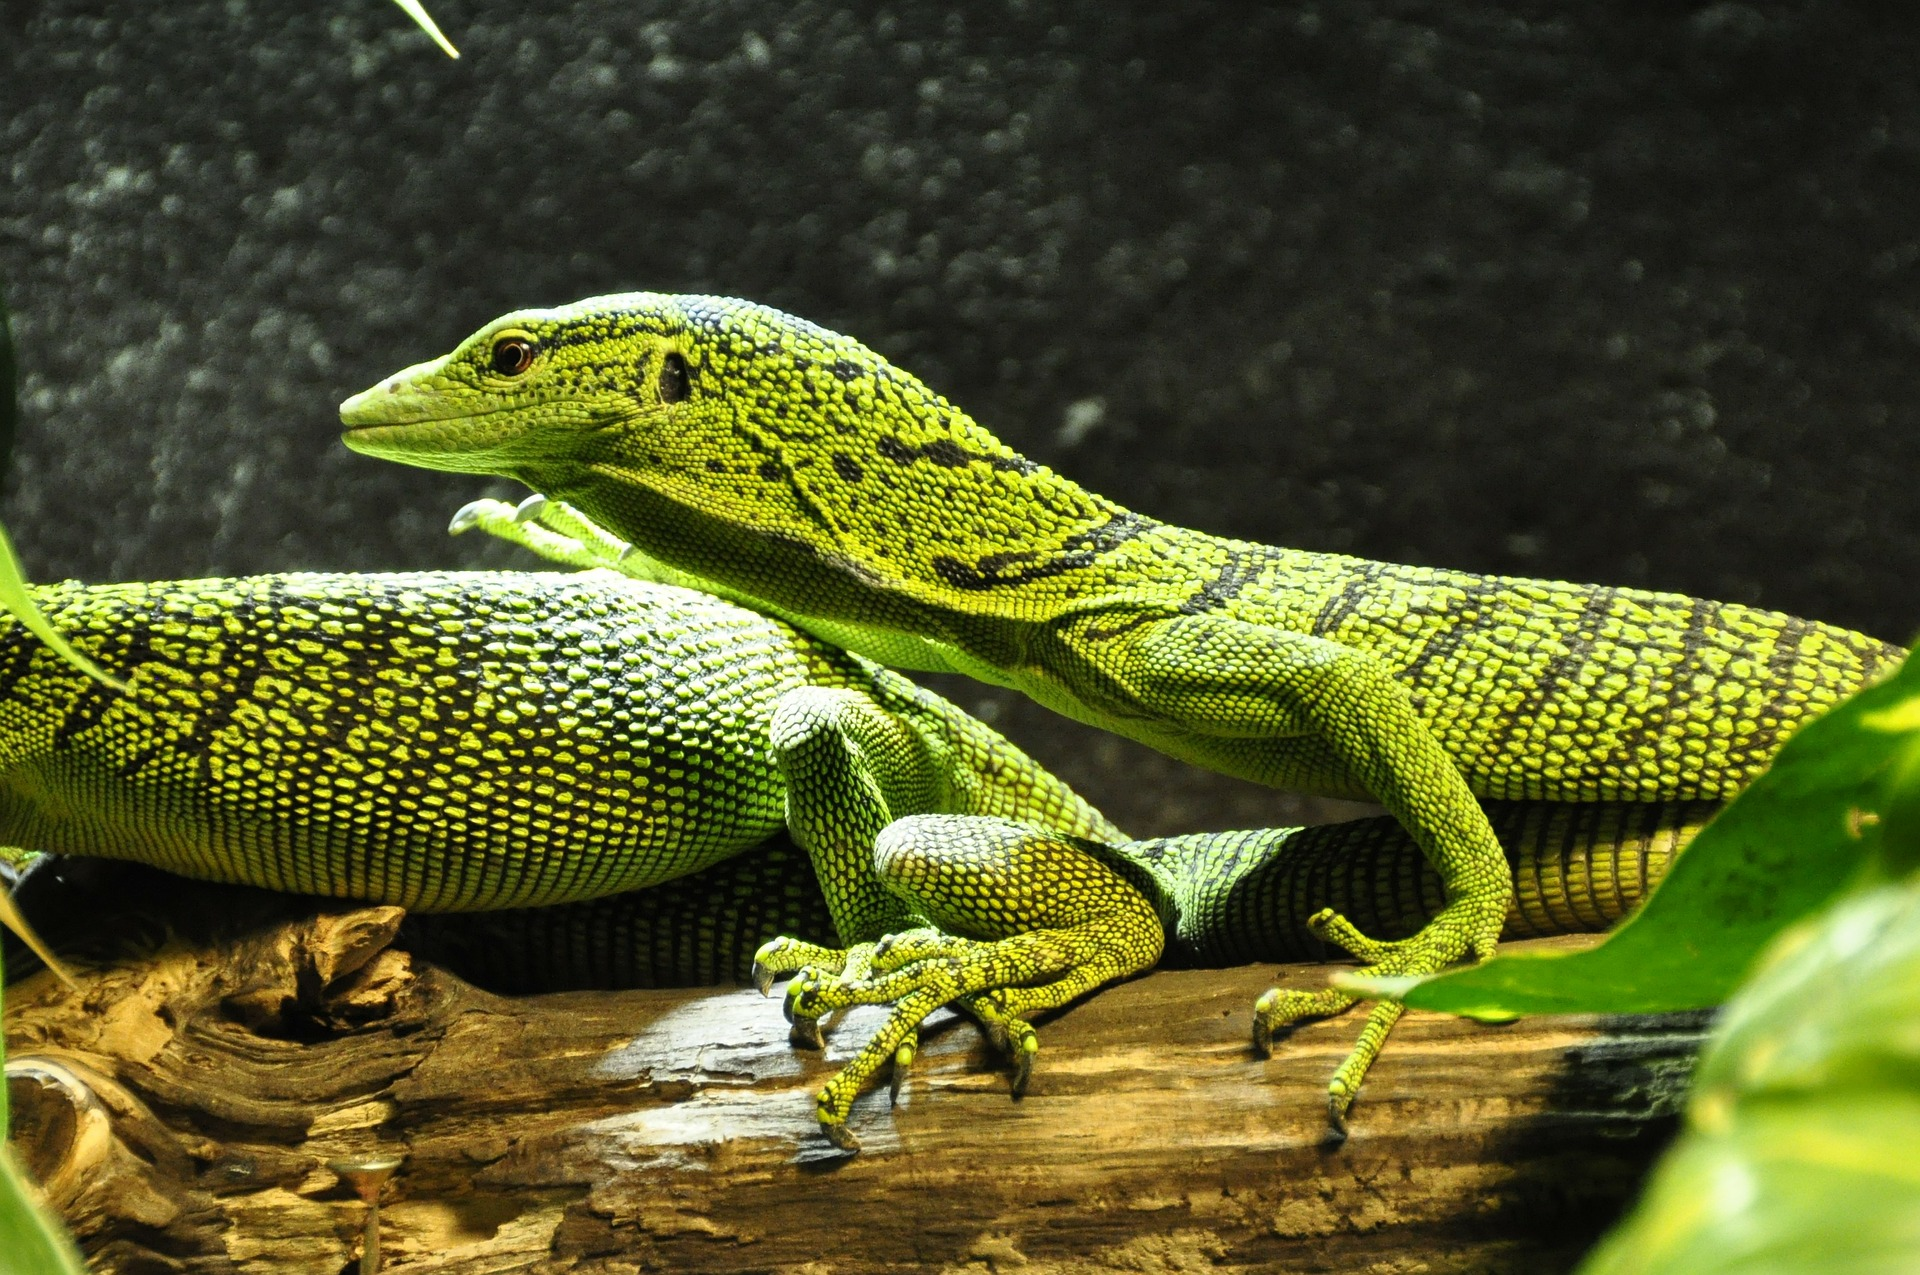 Free download high resolution image - free image free photo free stock image public domain picture -Two varanus